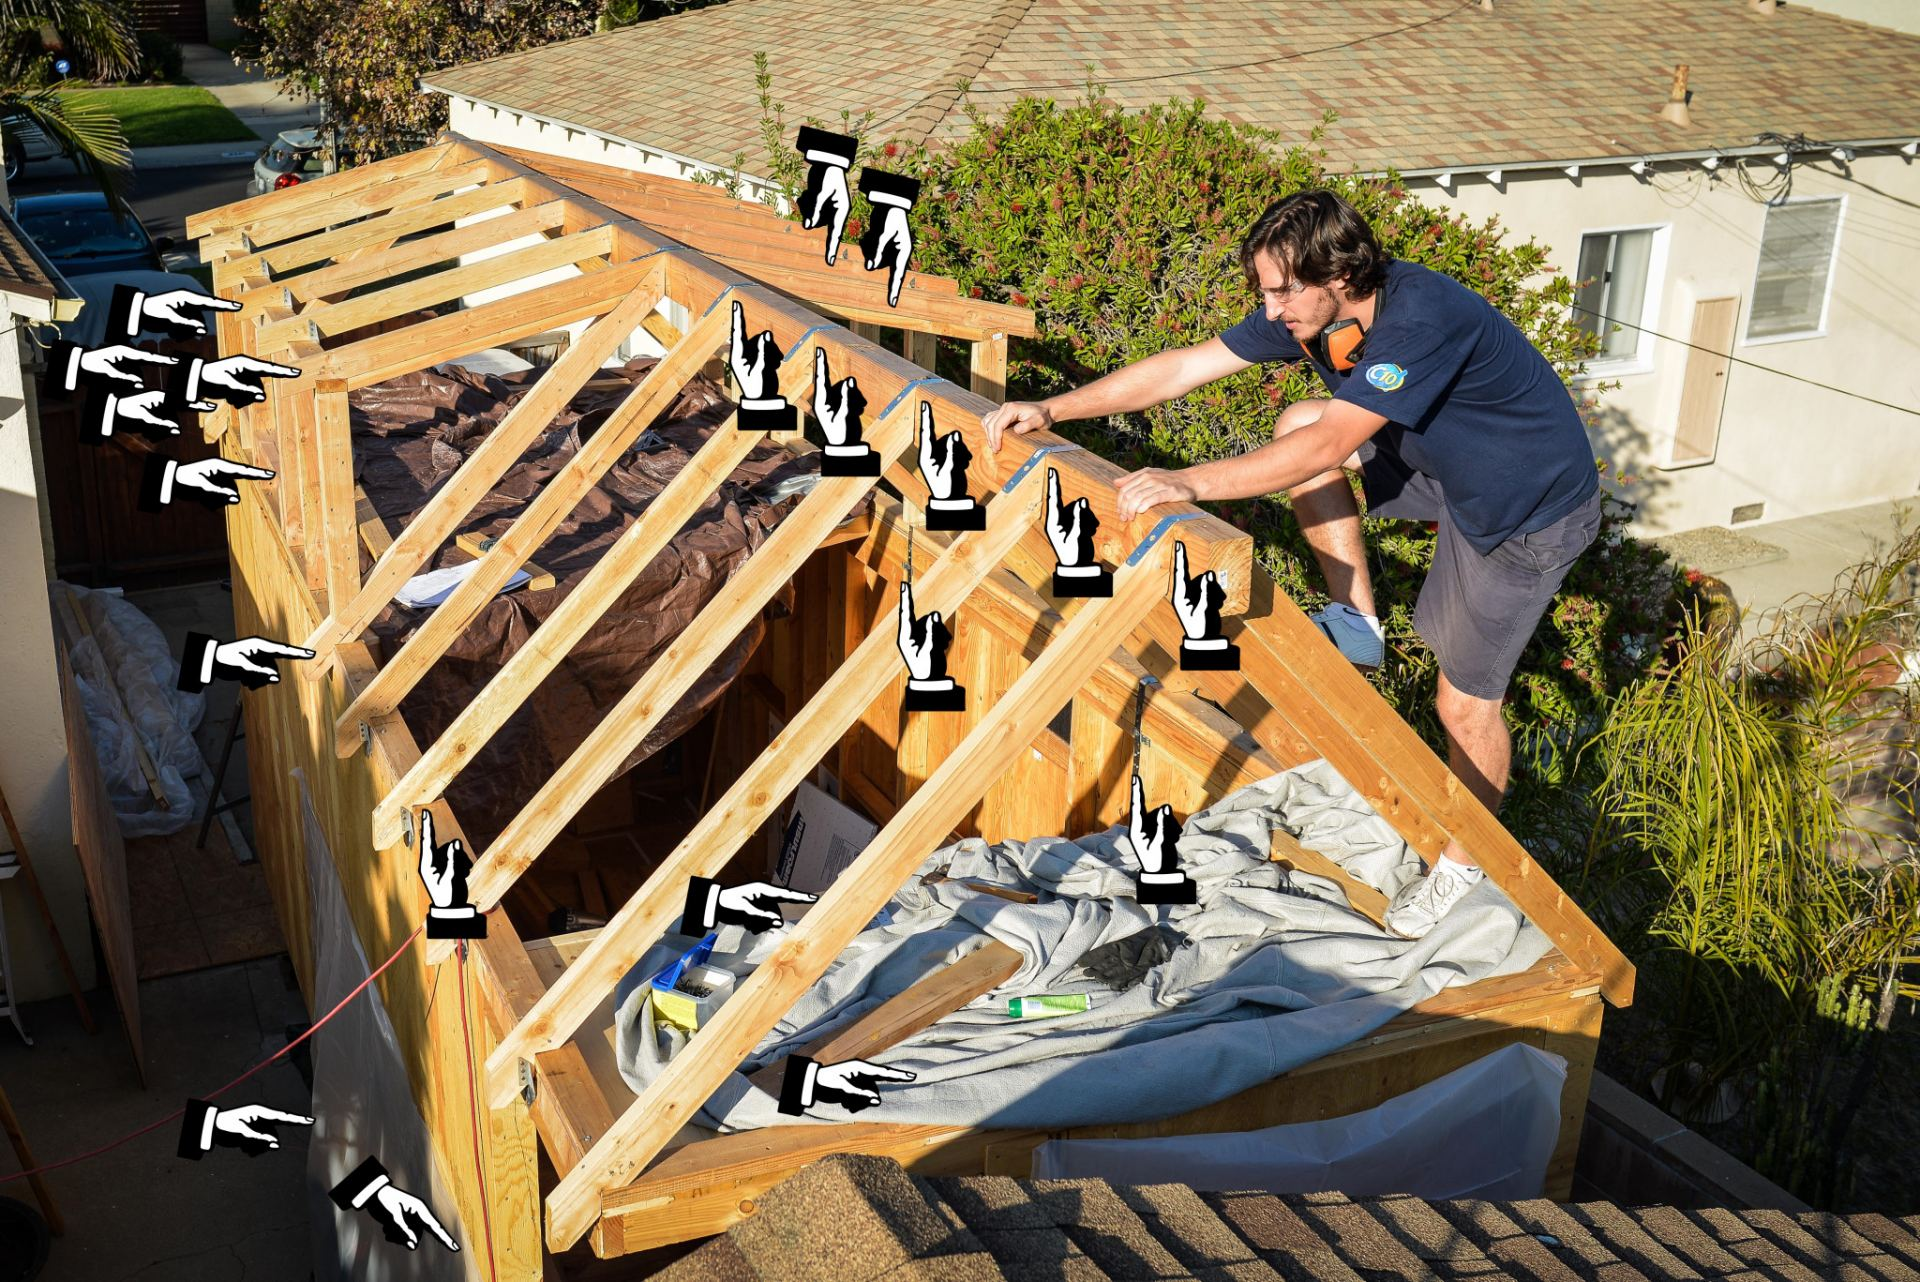 Tiny House Roof Framing and BBBBq - 0014-Edit